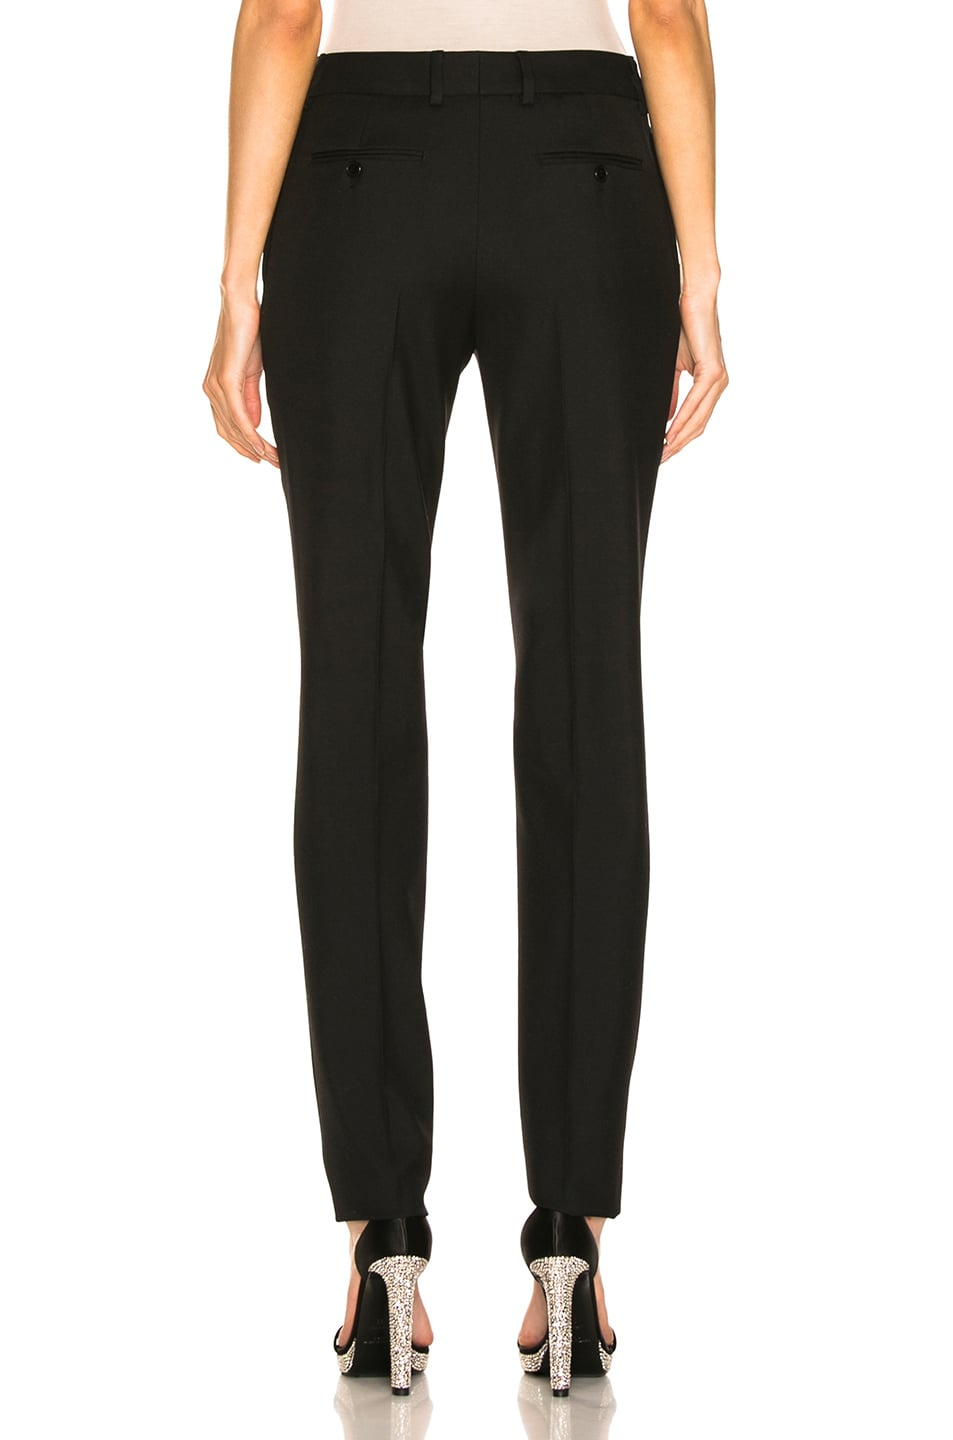 Image 3 of Saint Laurent High Waist Tailored Pant in Black